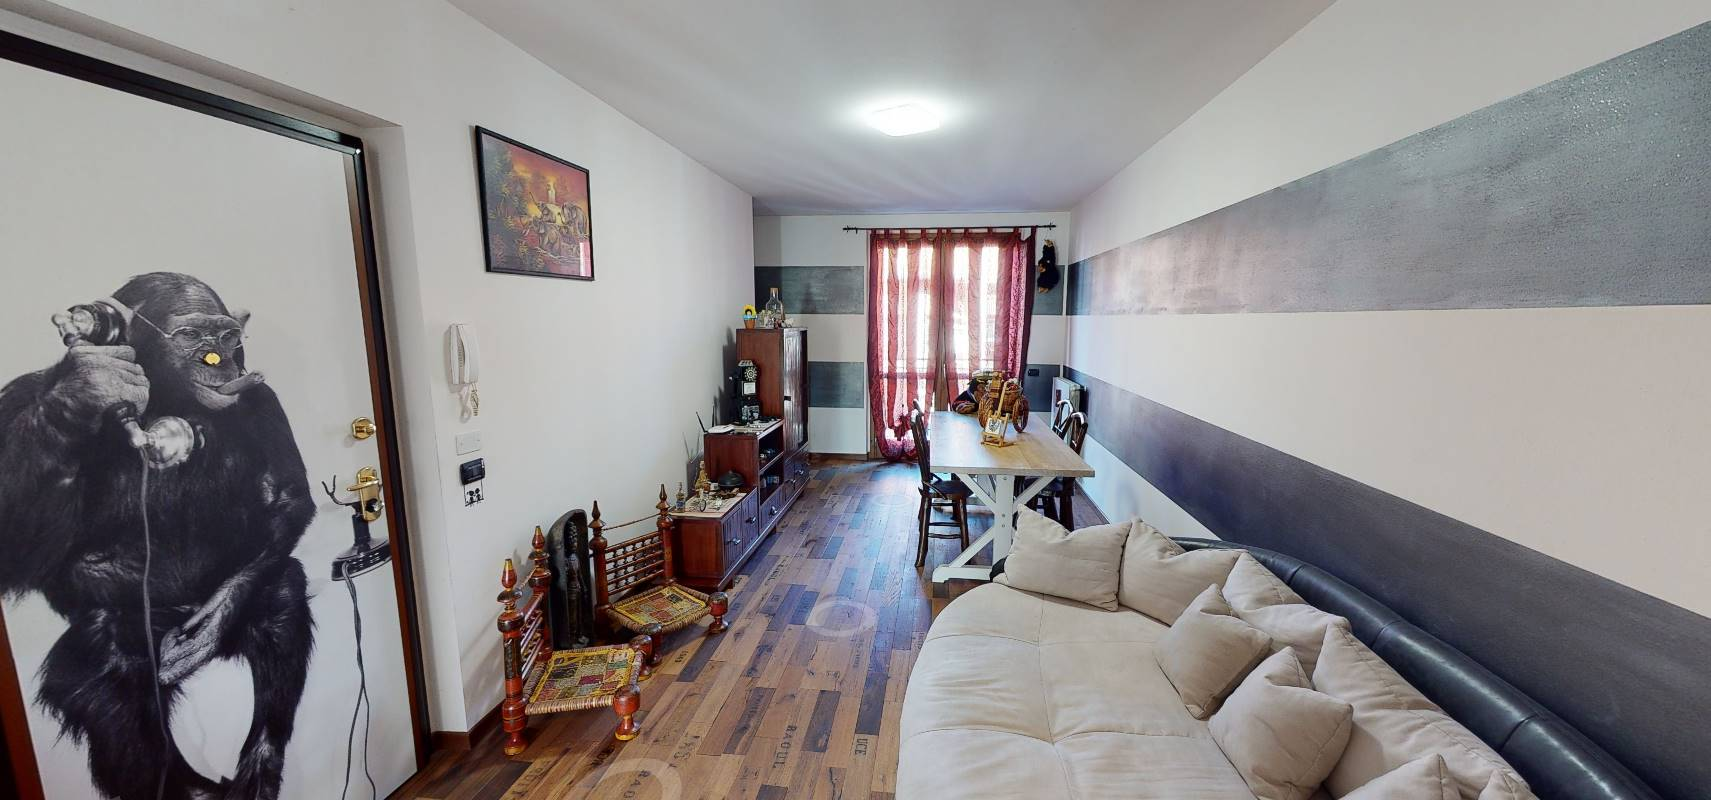 MORNICO AL SERIO, Apartment for sale of 110 Sq. mt., Excellent Condition, Heating Individual heating system, Energetic class: B, Epi: 39,1 kwh/m2